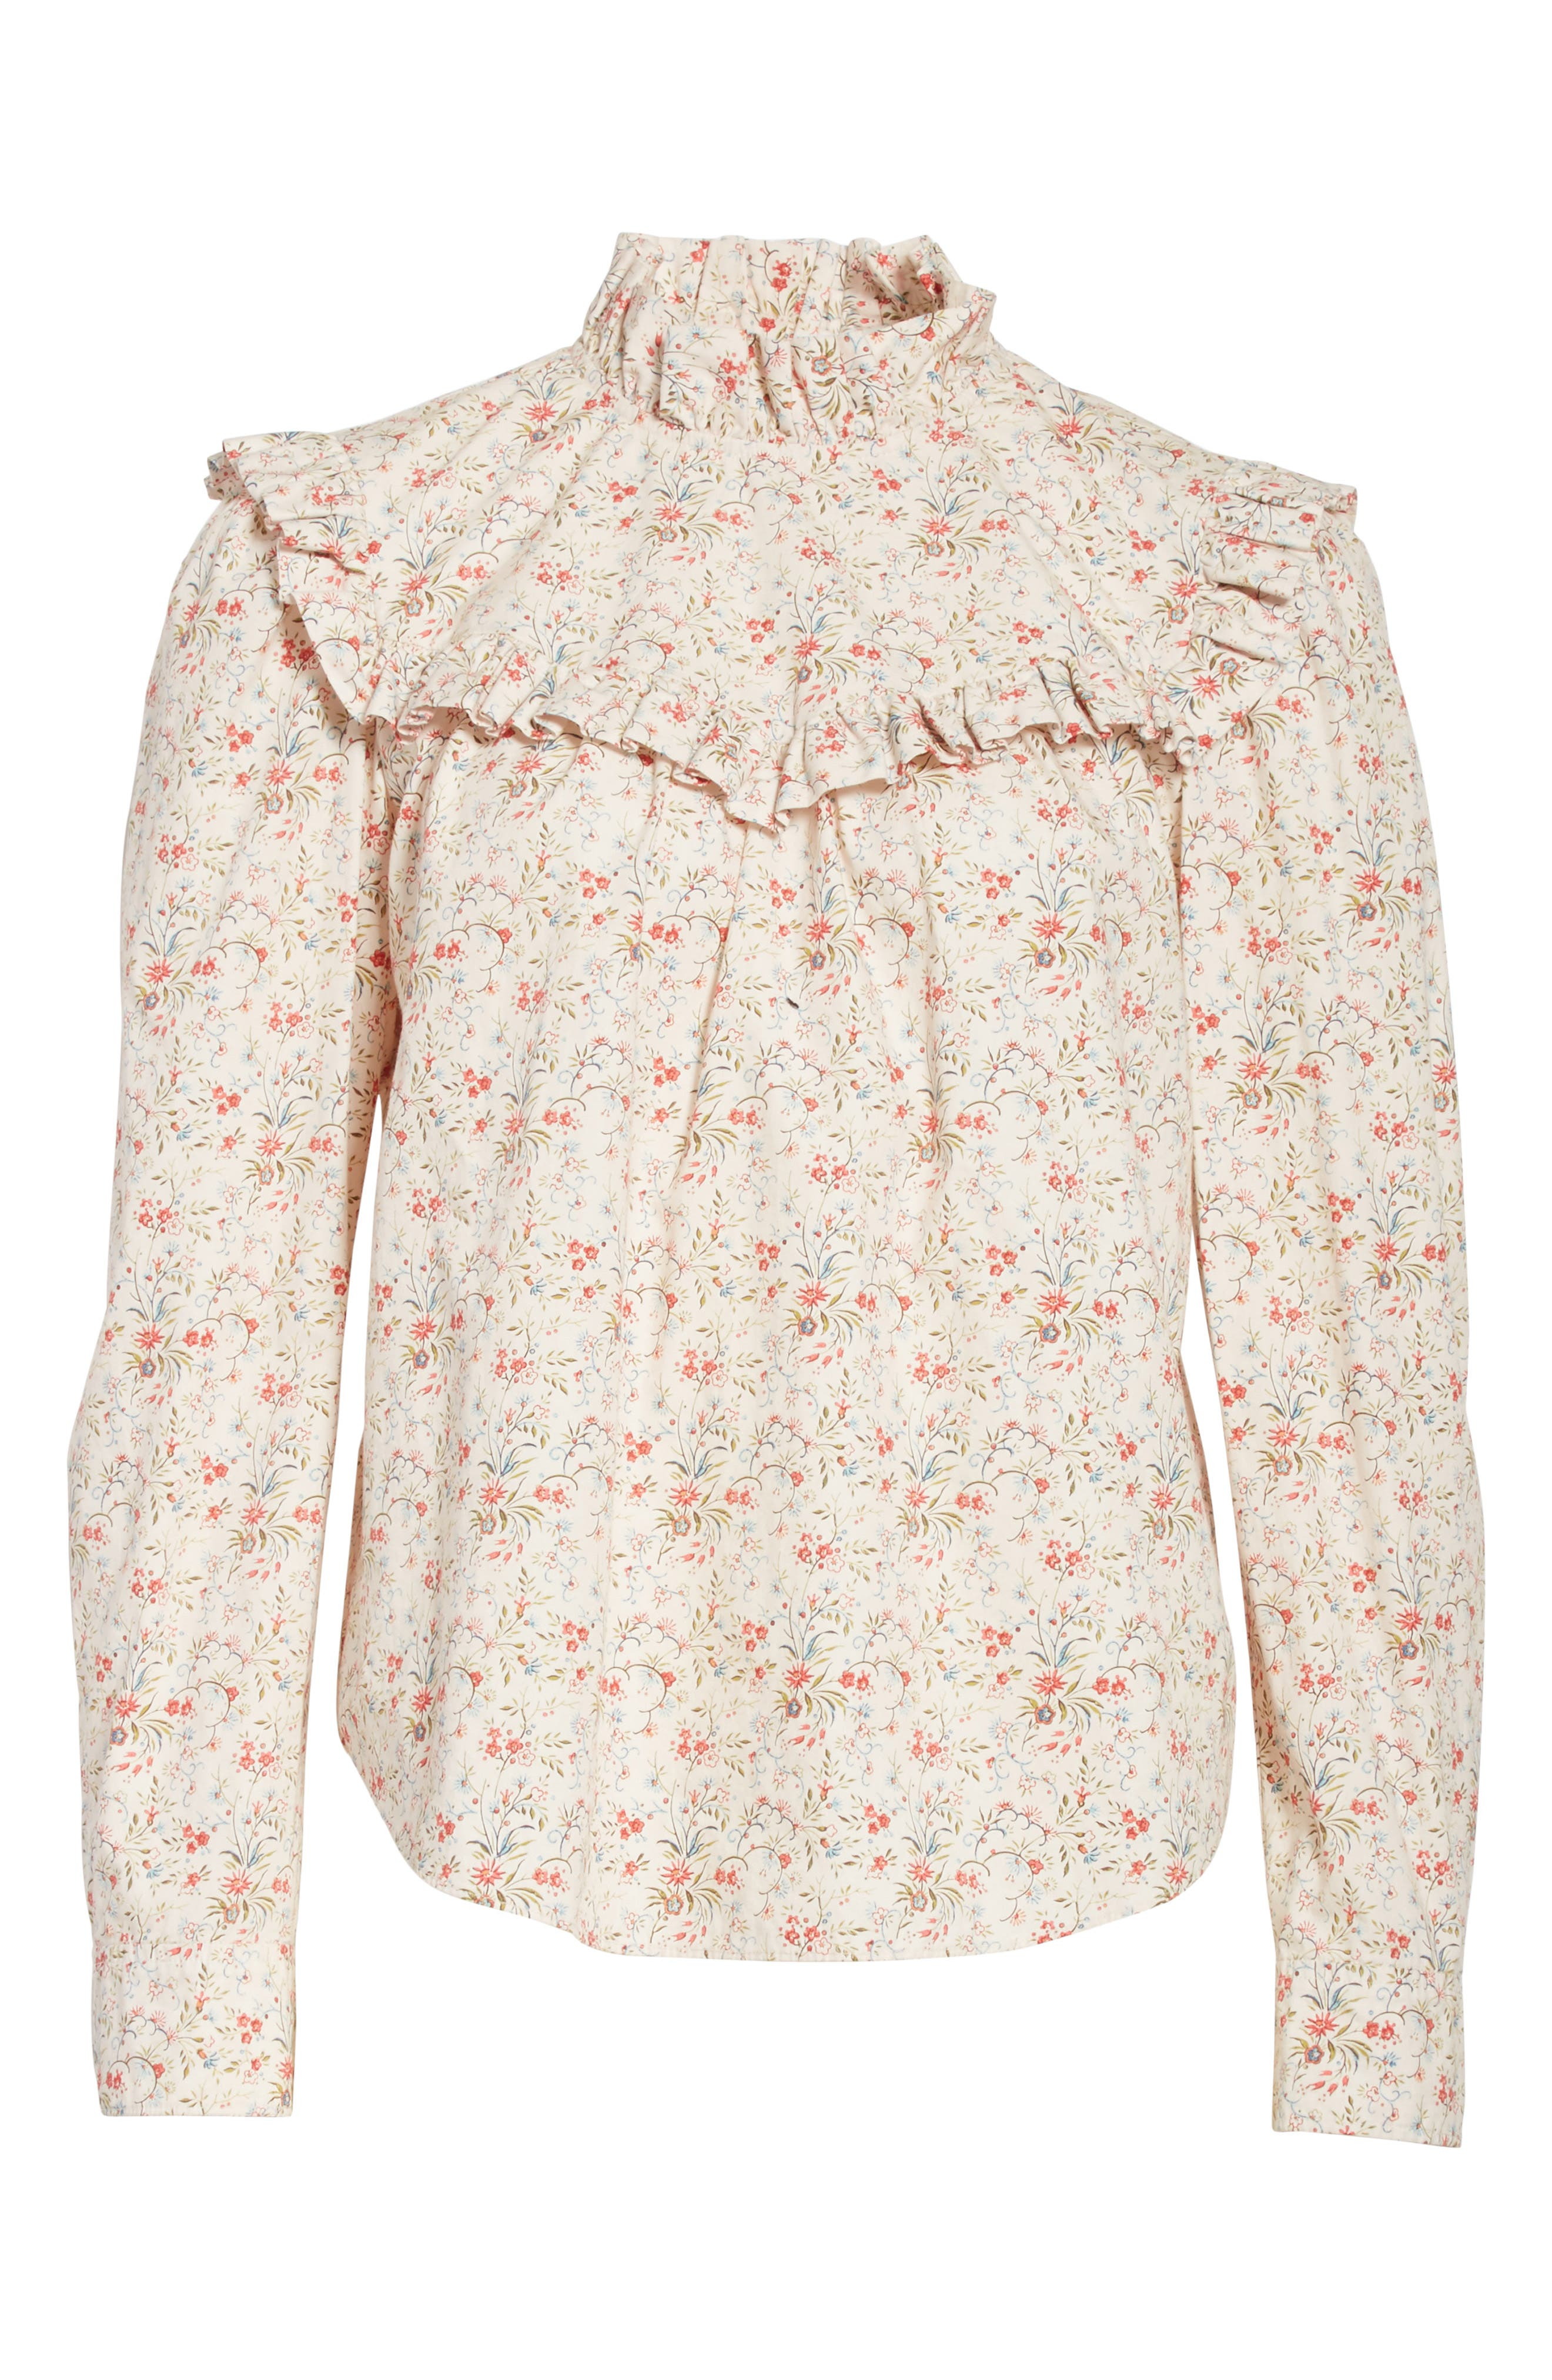 Brittany Floral Blouse,                             Alternate thumbnail 6, color,                             902